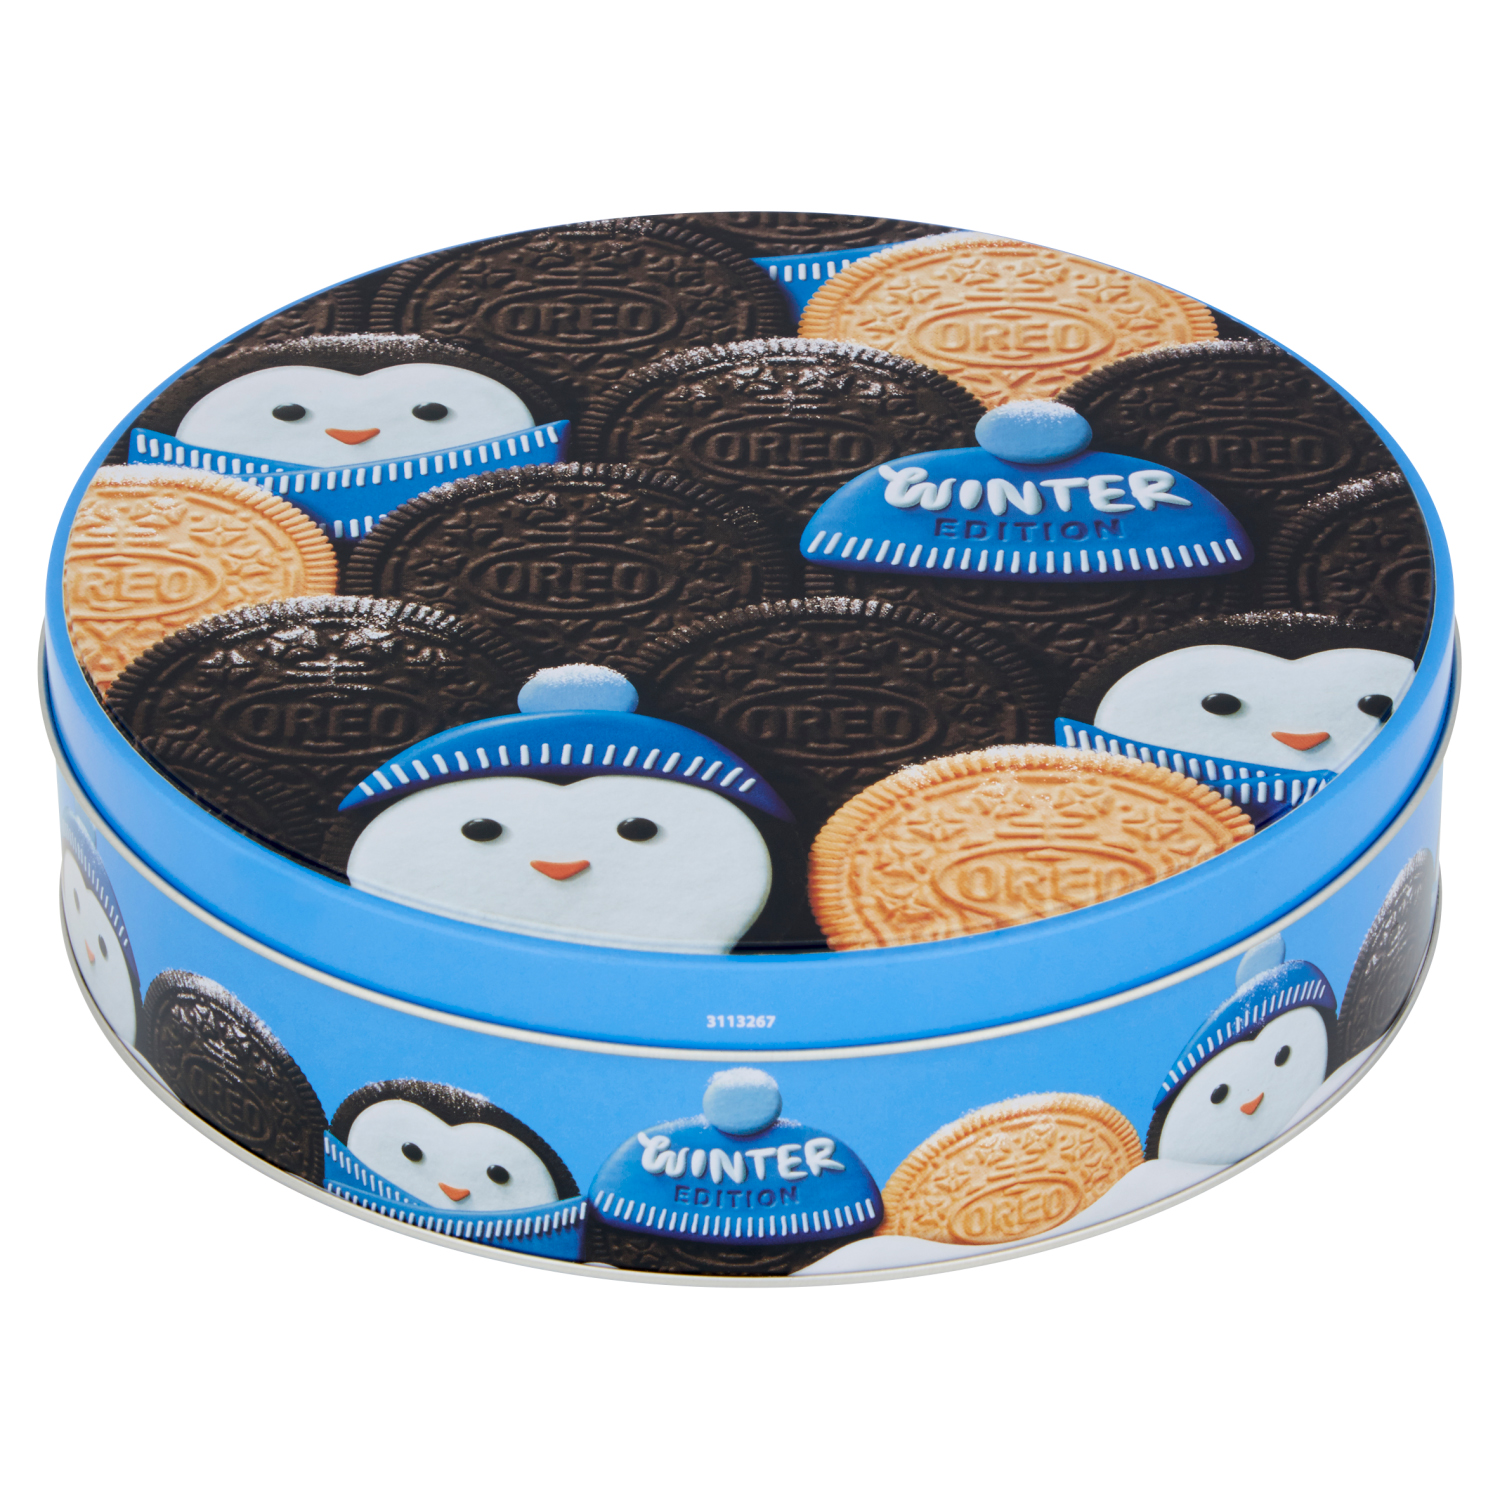 Grab a tin of Oreo assorted Christmas biscuits down to £3 at Tesco